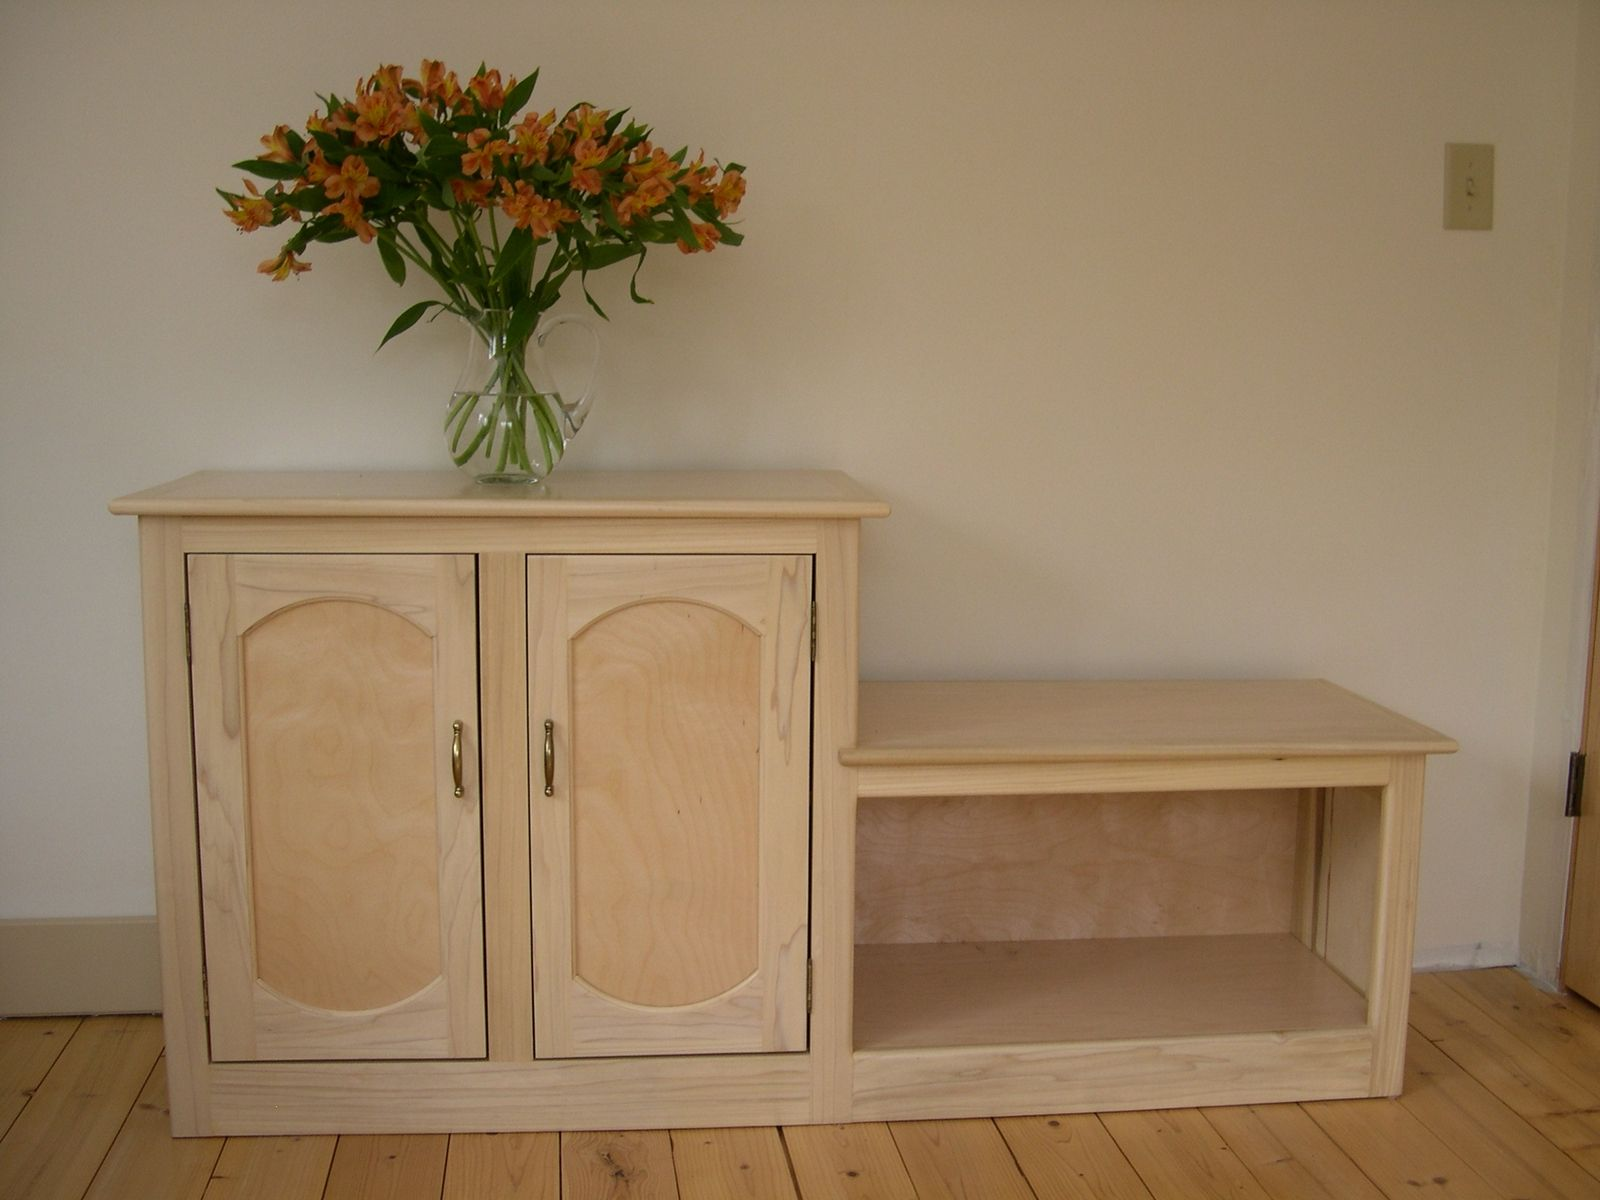 Painted Foyer Cabinets : Custom entryway cabinet and bench by r e price cabinetry